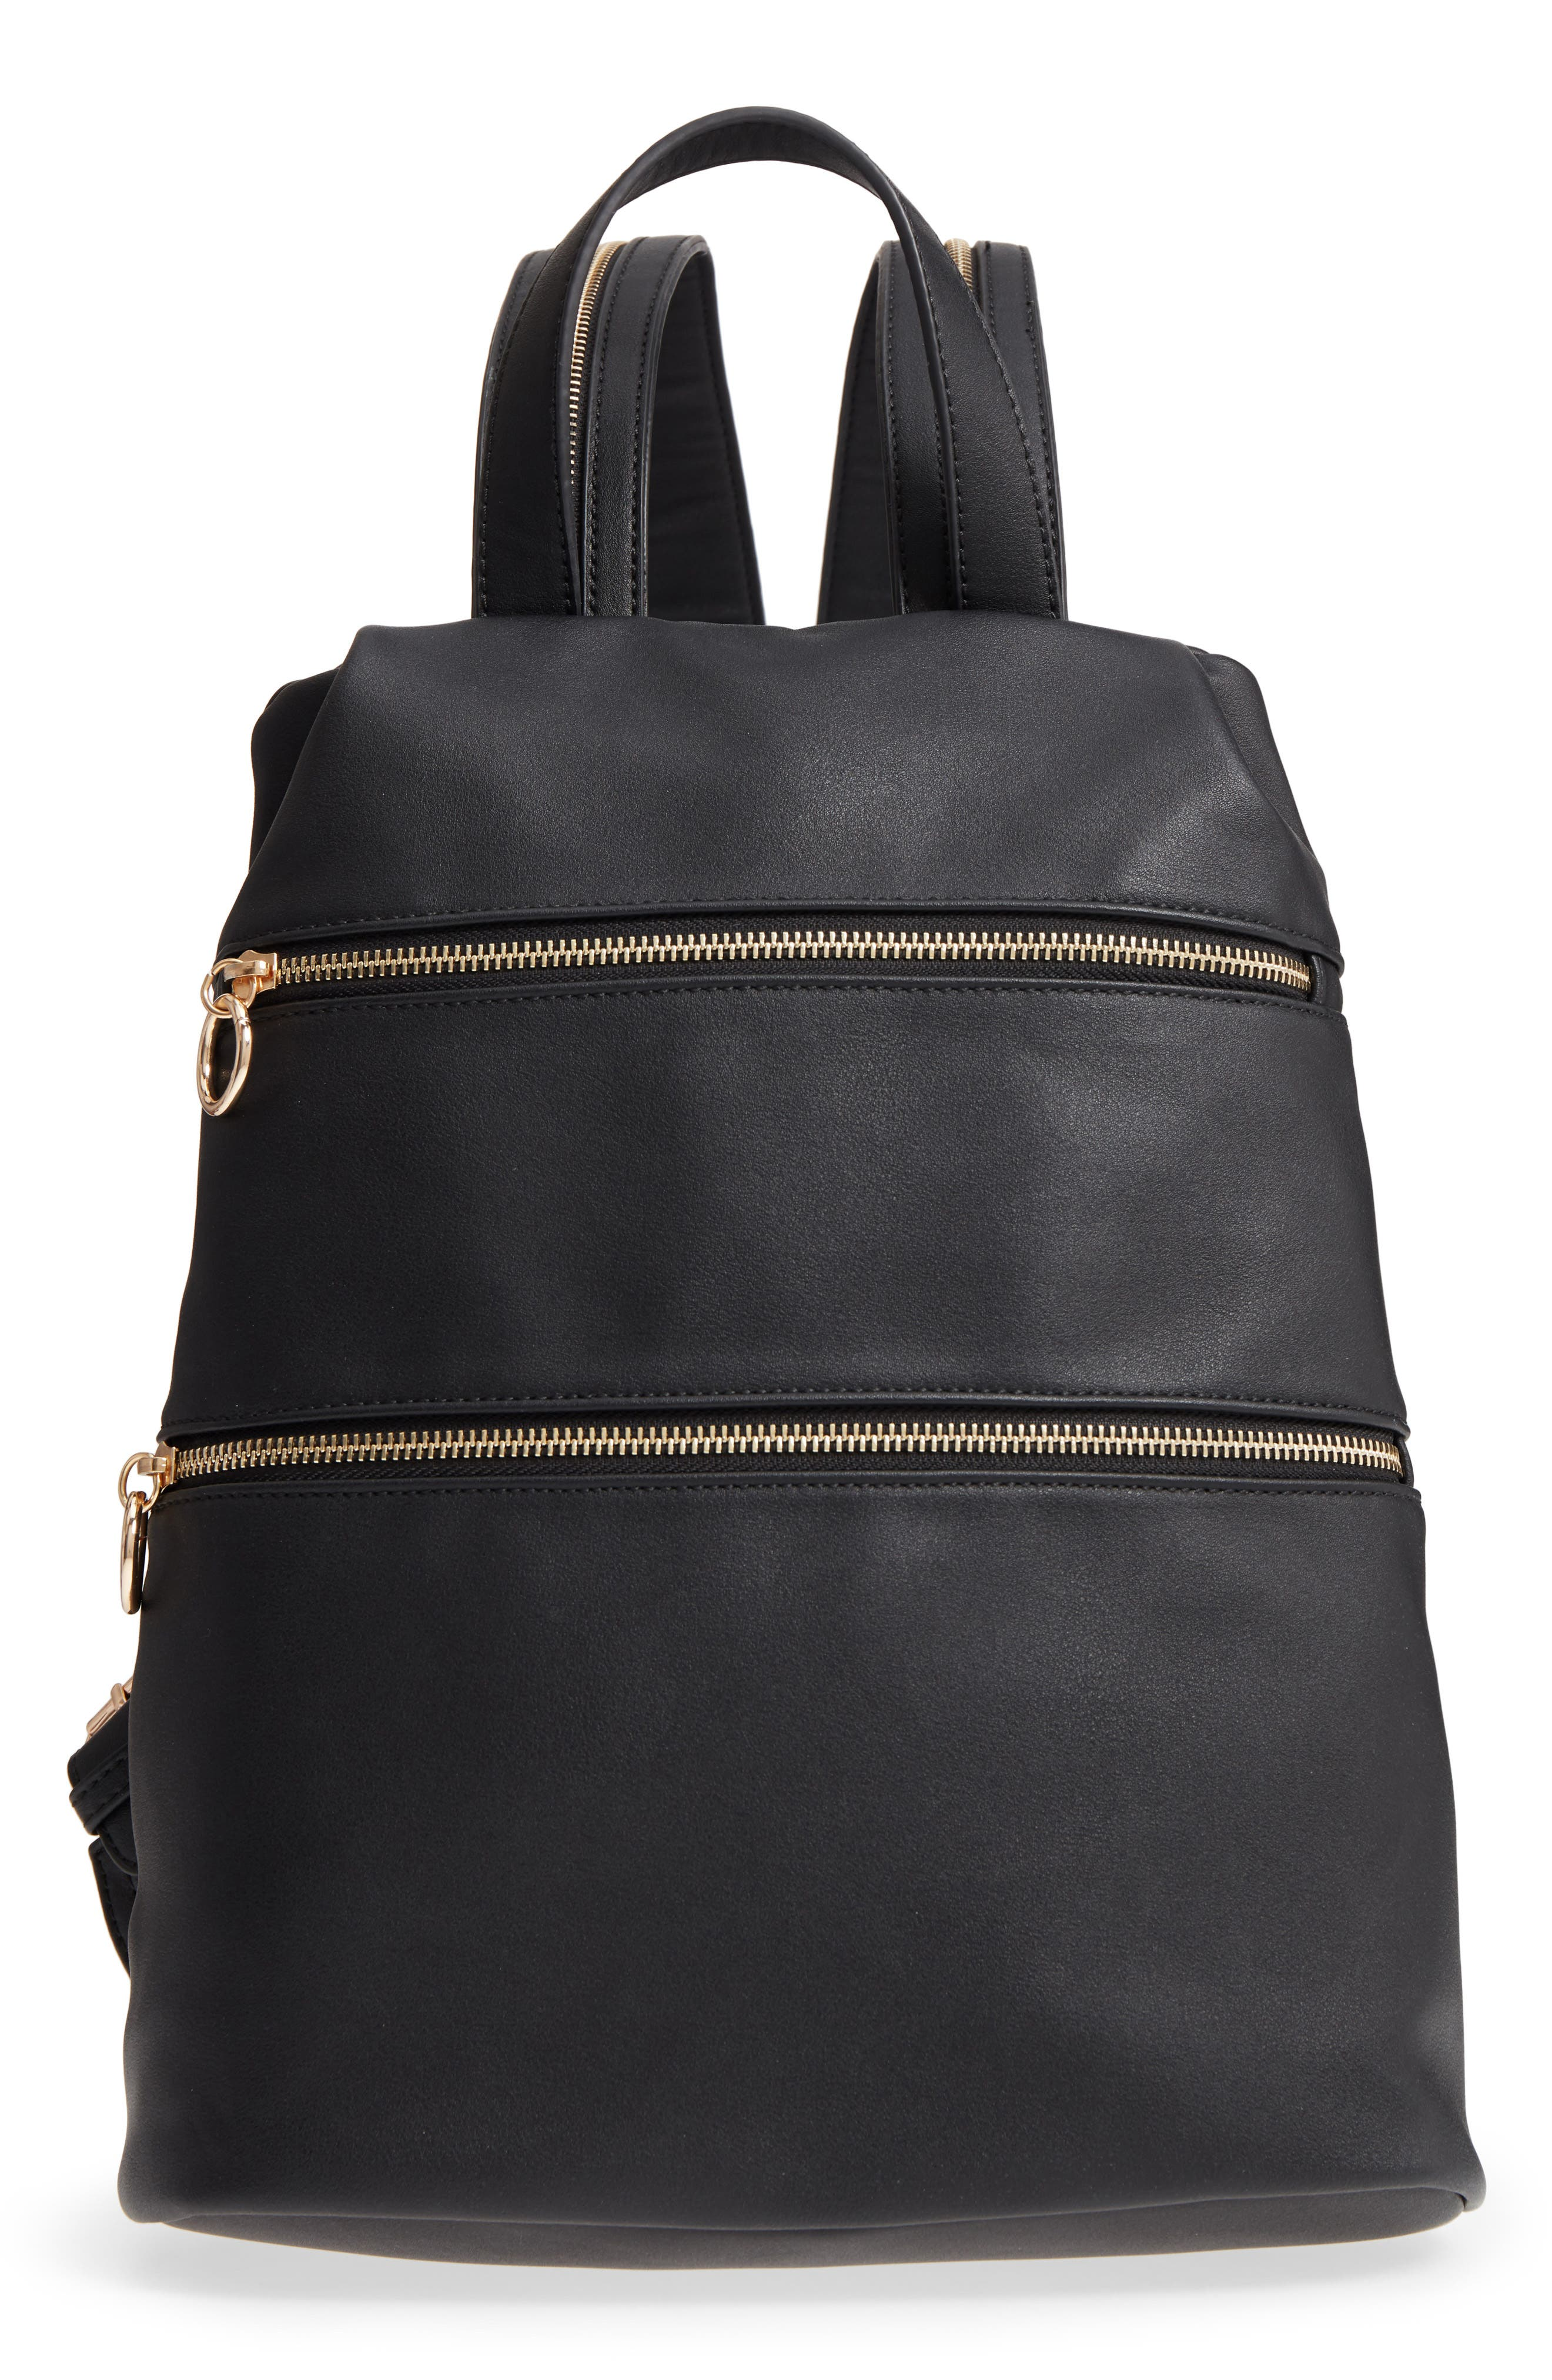 Double Zip O Ring Faux Leather Backpack,                             Main thumbnail 1, color,                             001